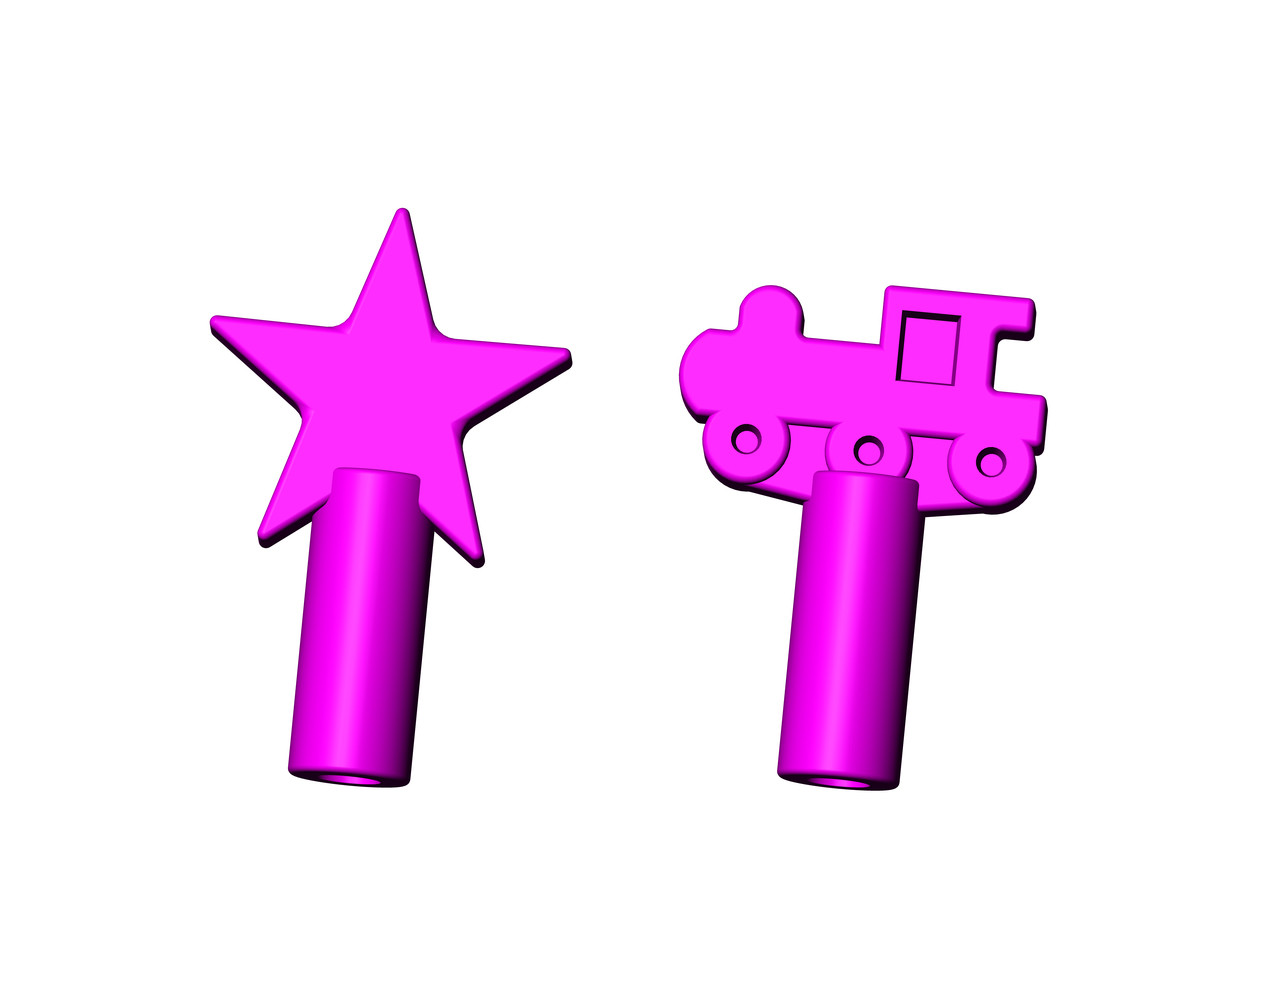 Chew Stixx Pencil Toppers Chewable Shapes by UDI - Grape